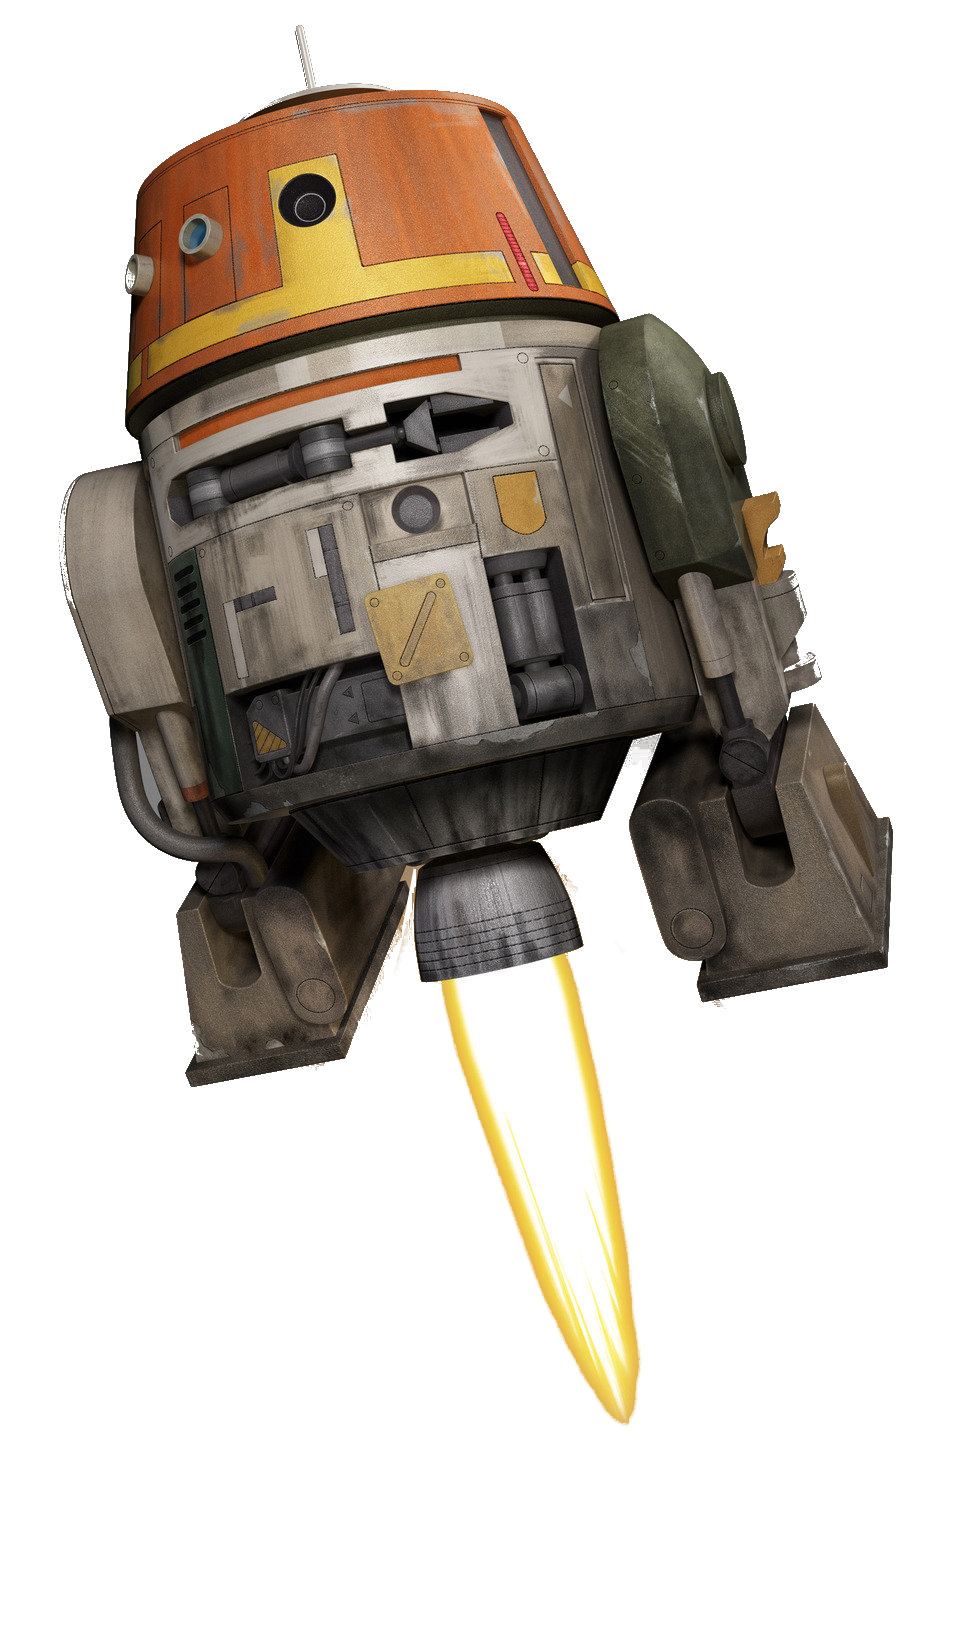 Chopper star wars rebels